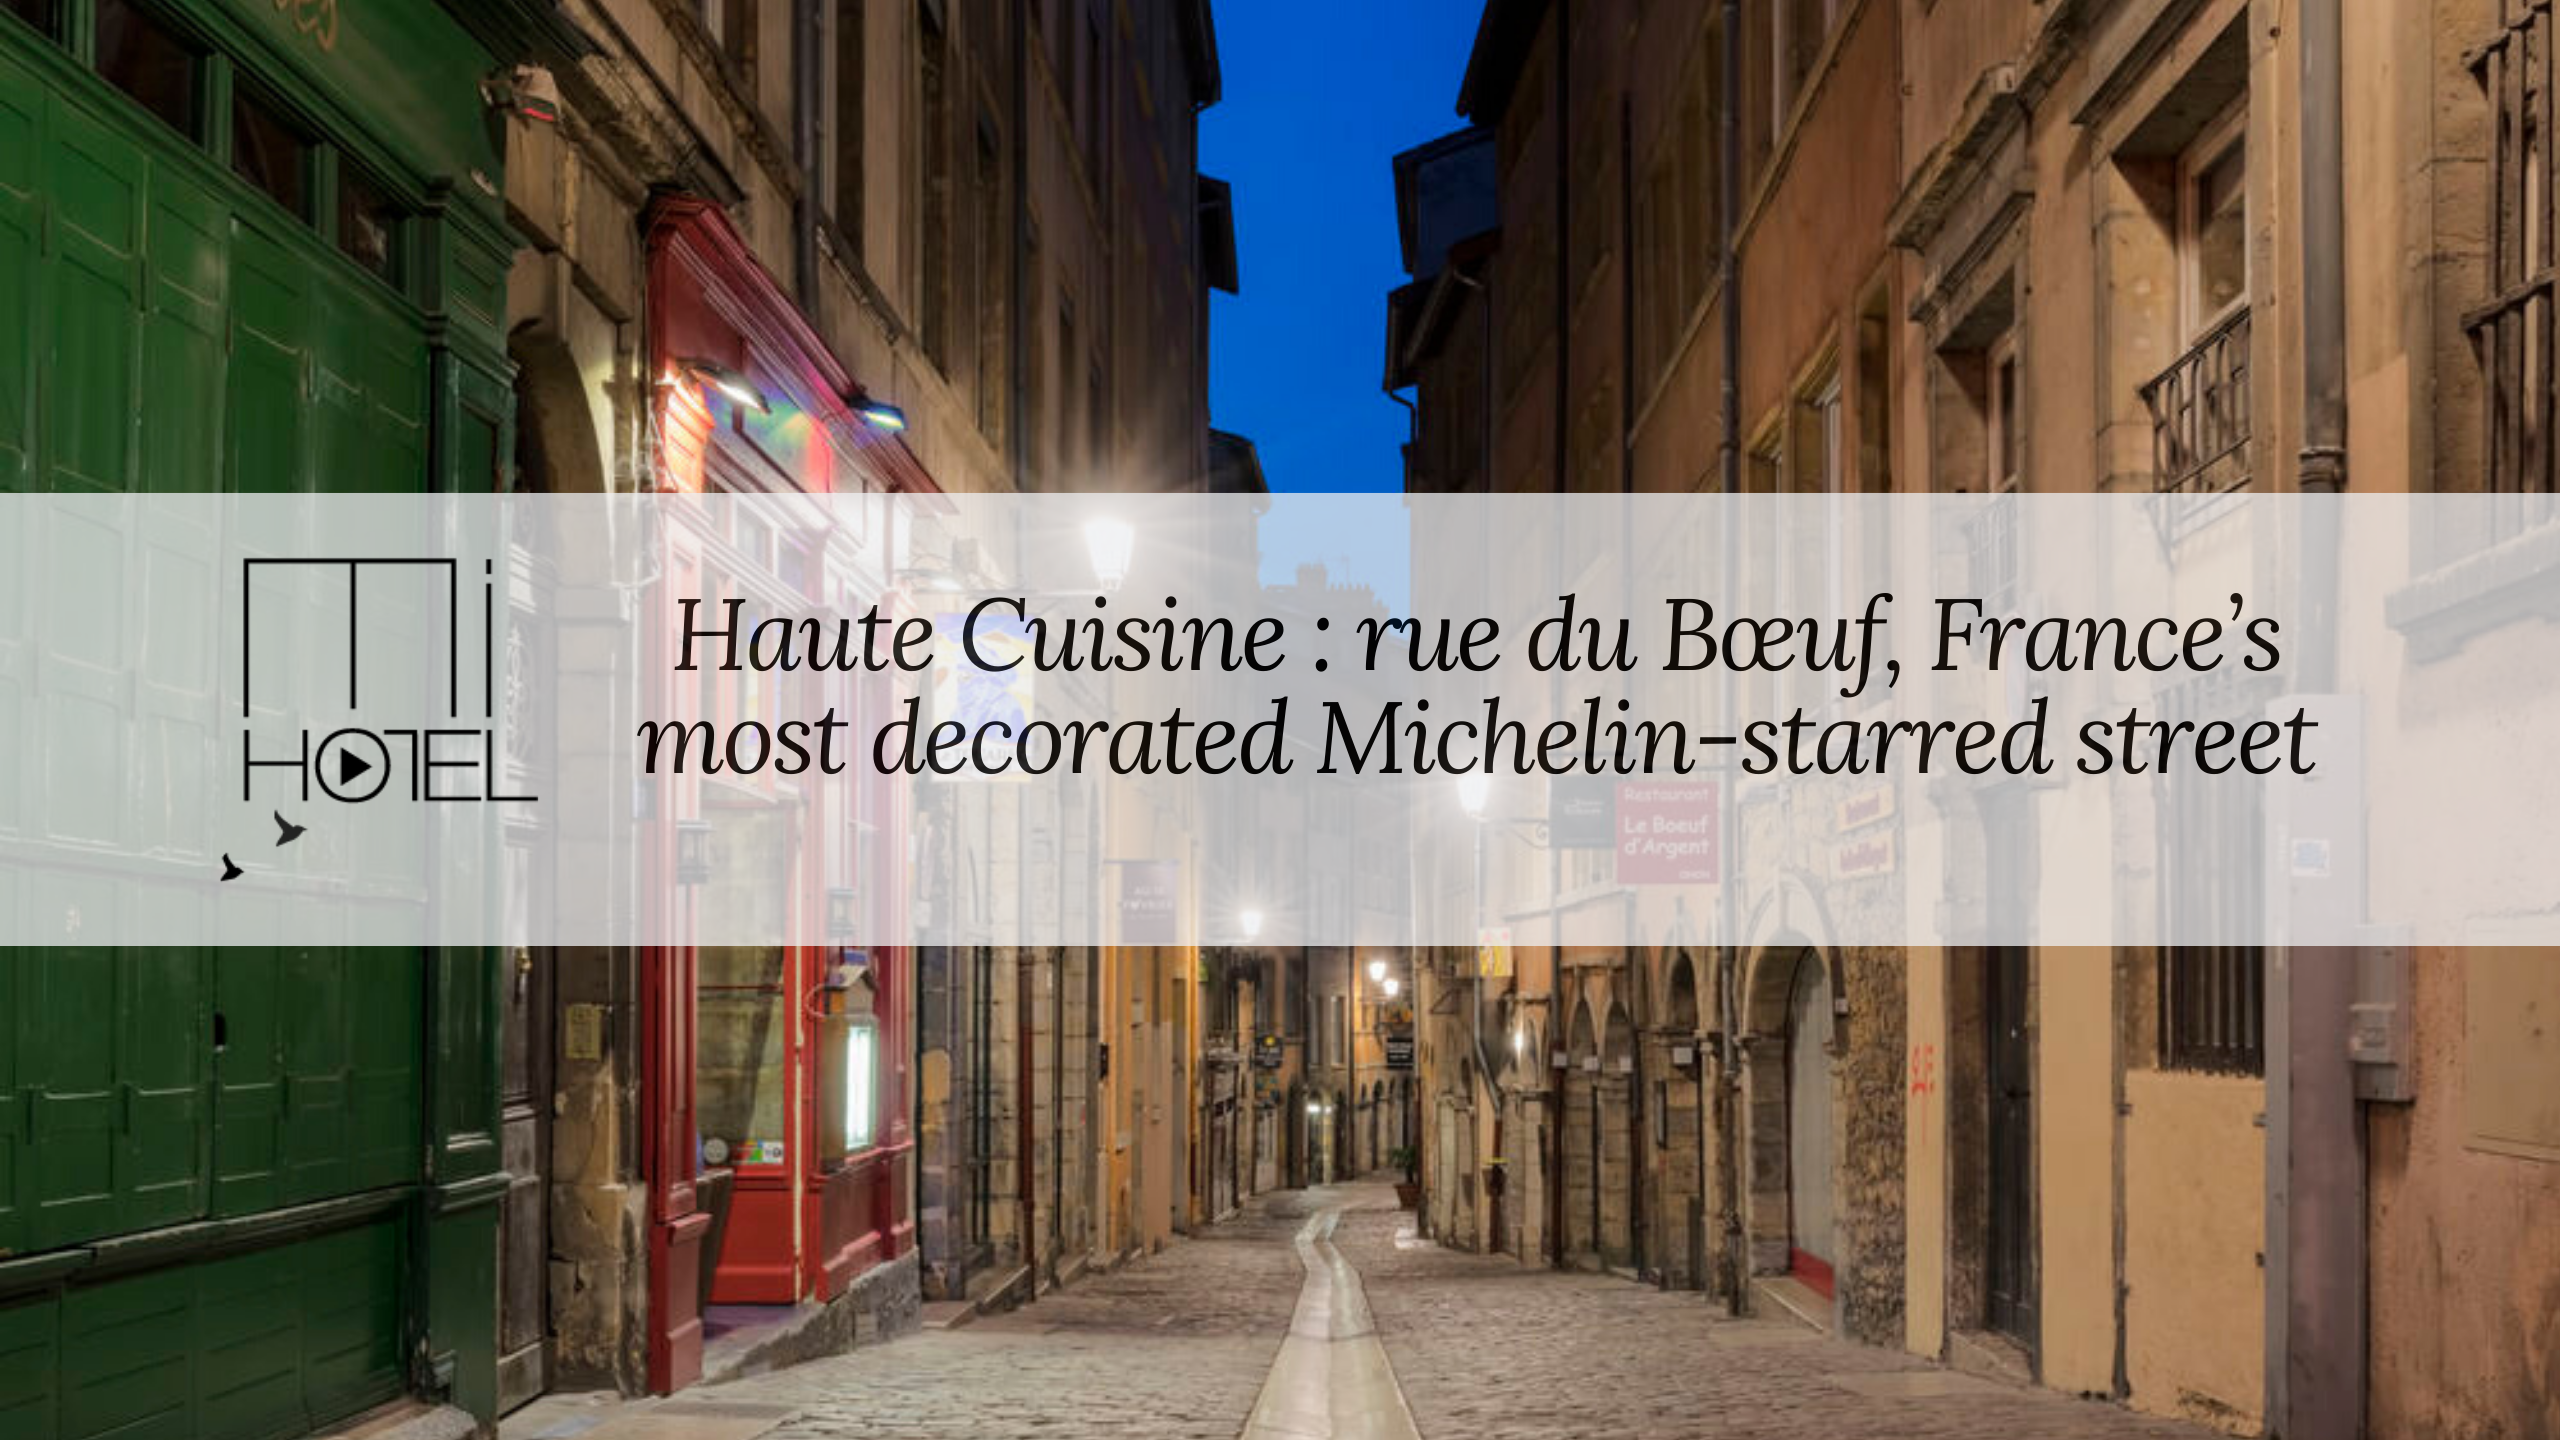 Haute Cuisine - rue du Bœuf, France's most decorated Michelin-starred street - BLOG EN